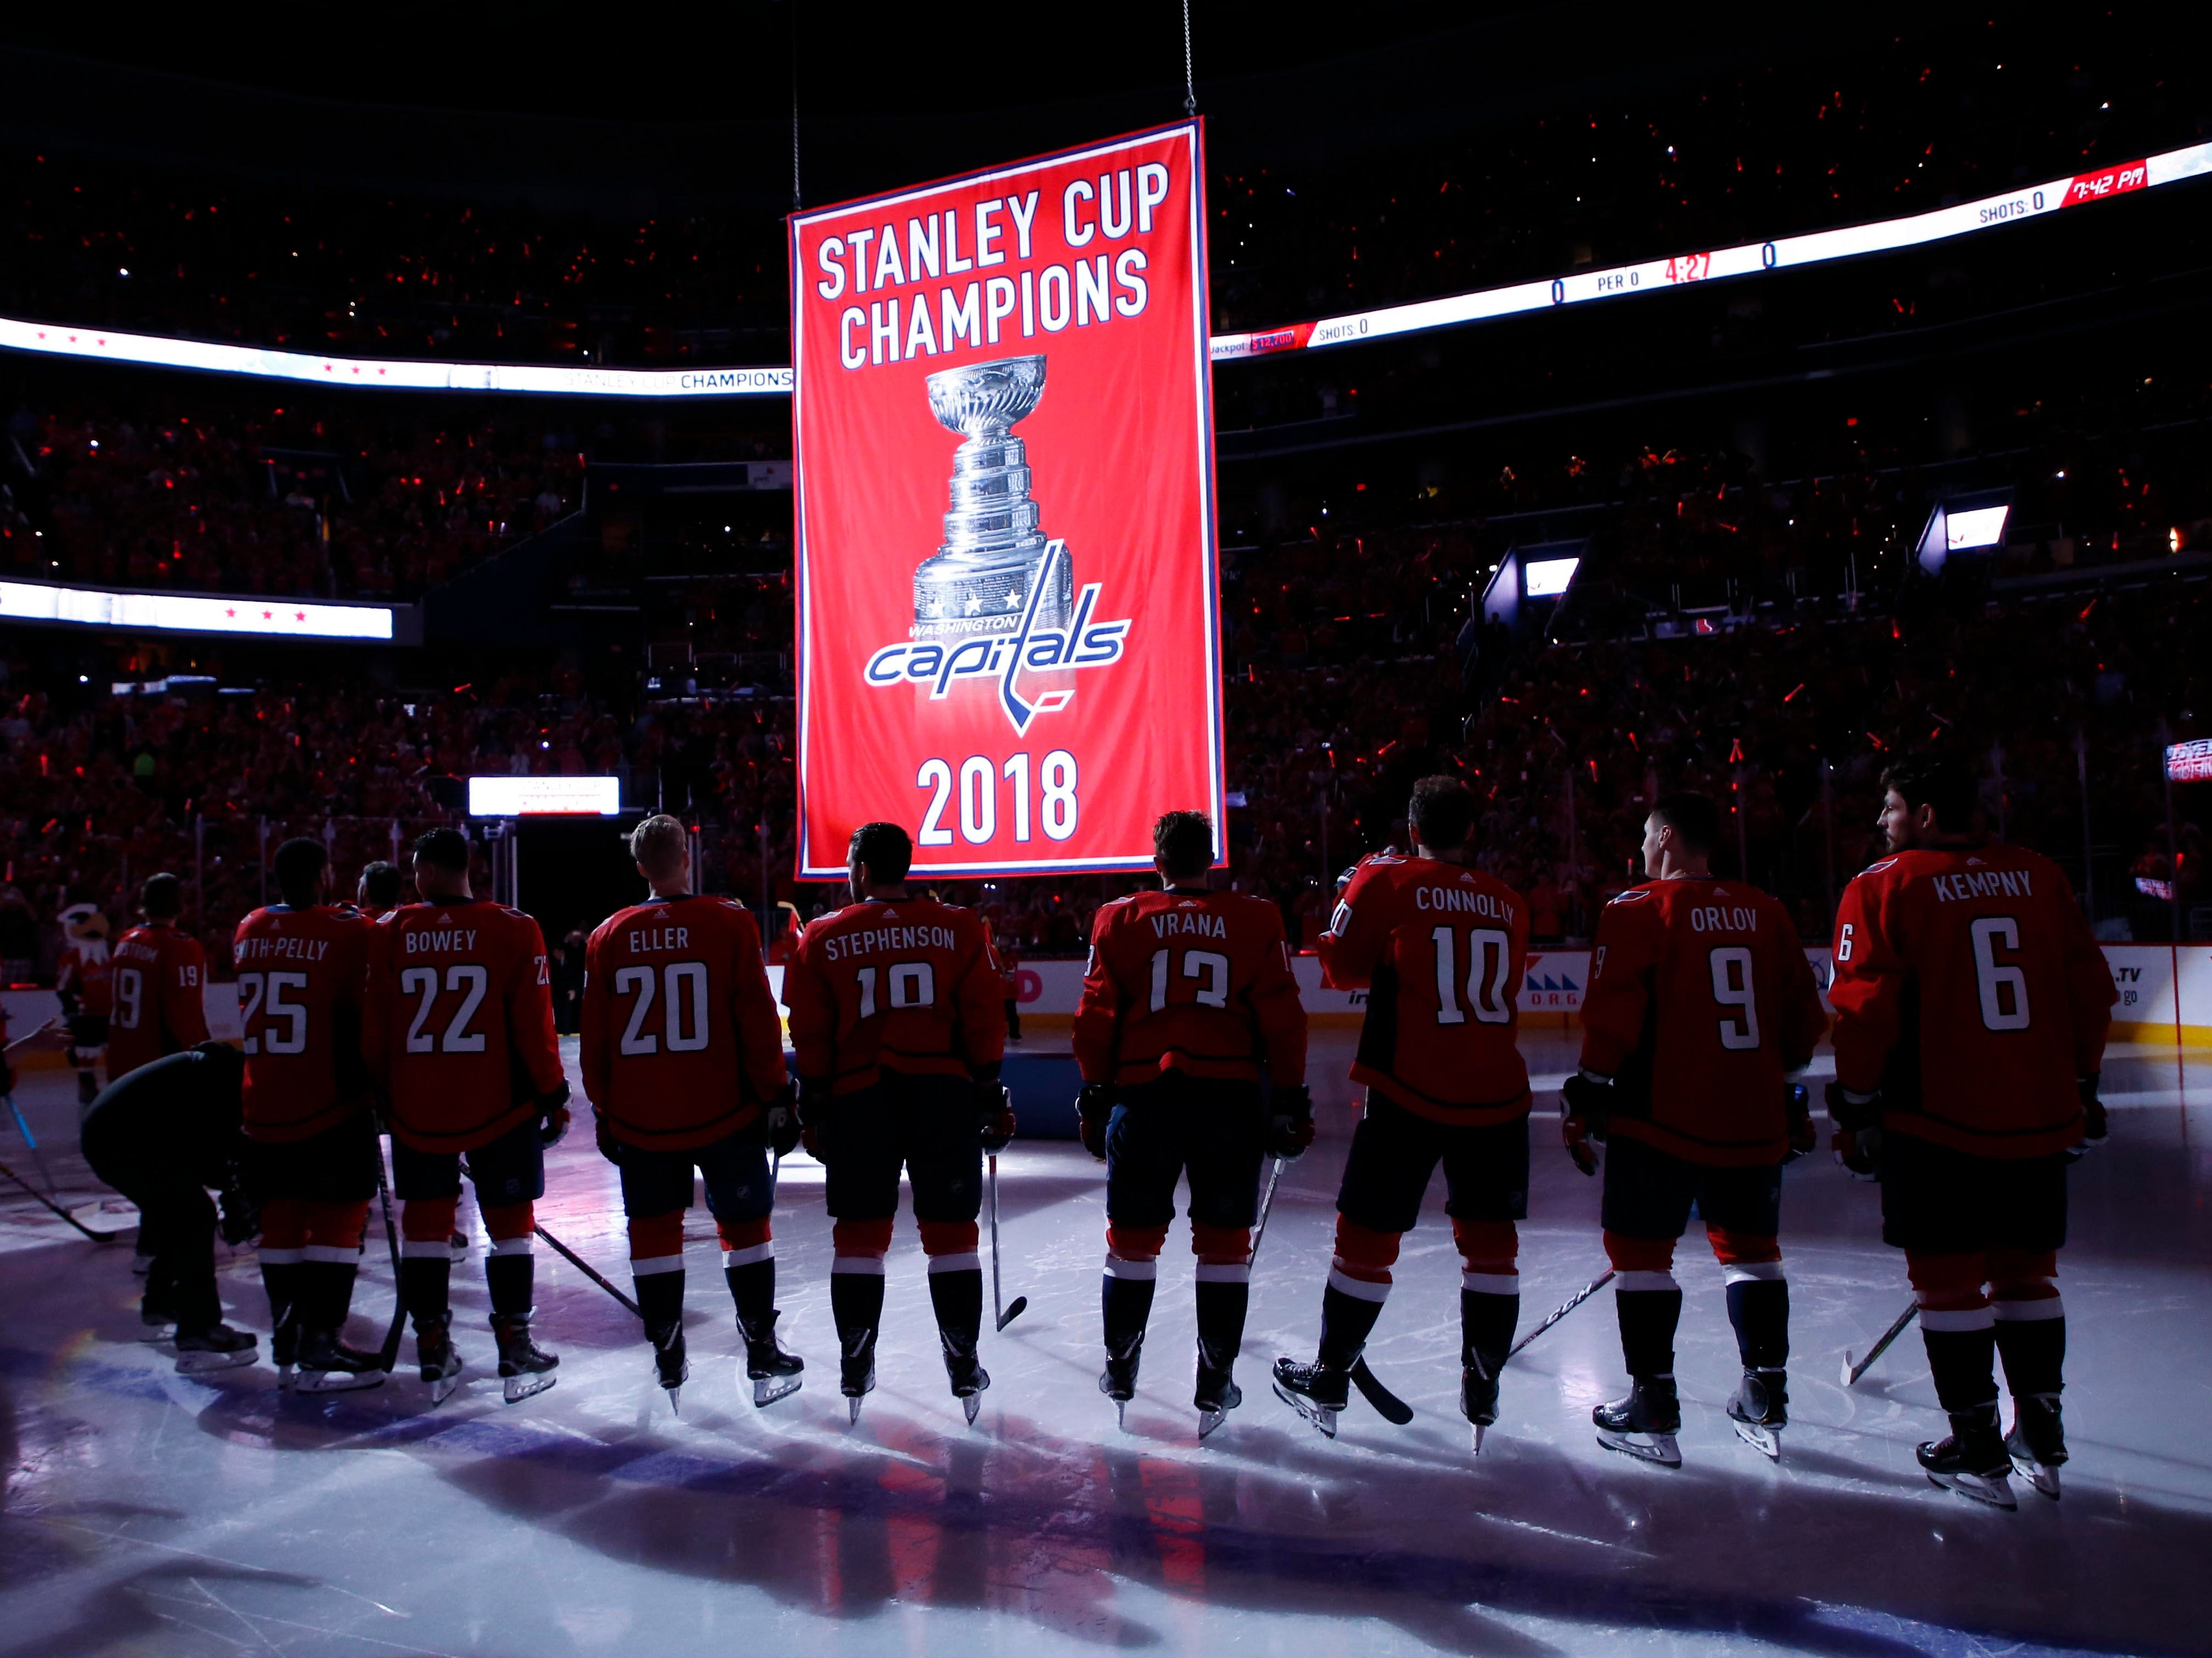 Oct. 3: Washington Capitals players watch as the 2018 Stanley Cup championship banner is raised to the rafters before the game against the Boston Bruins.